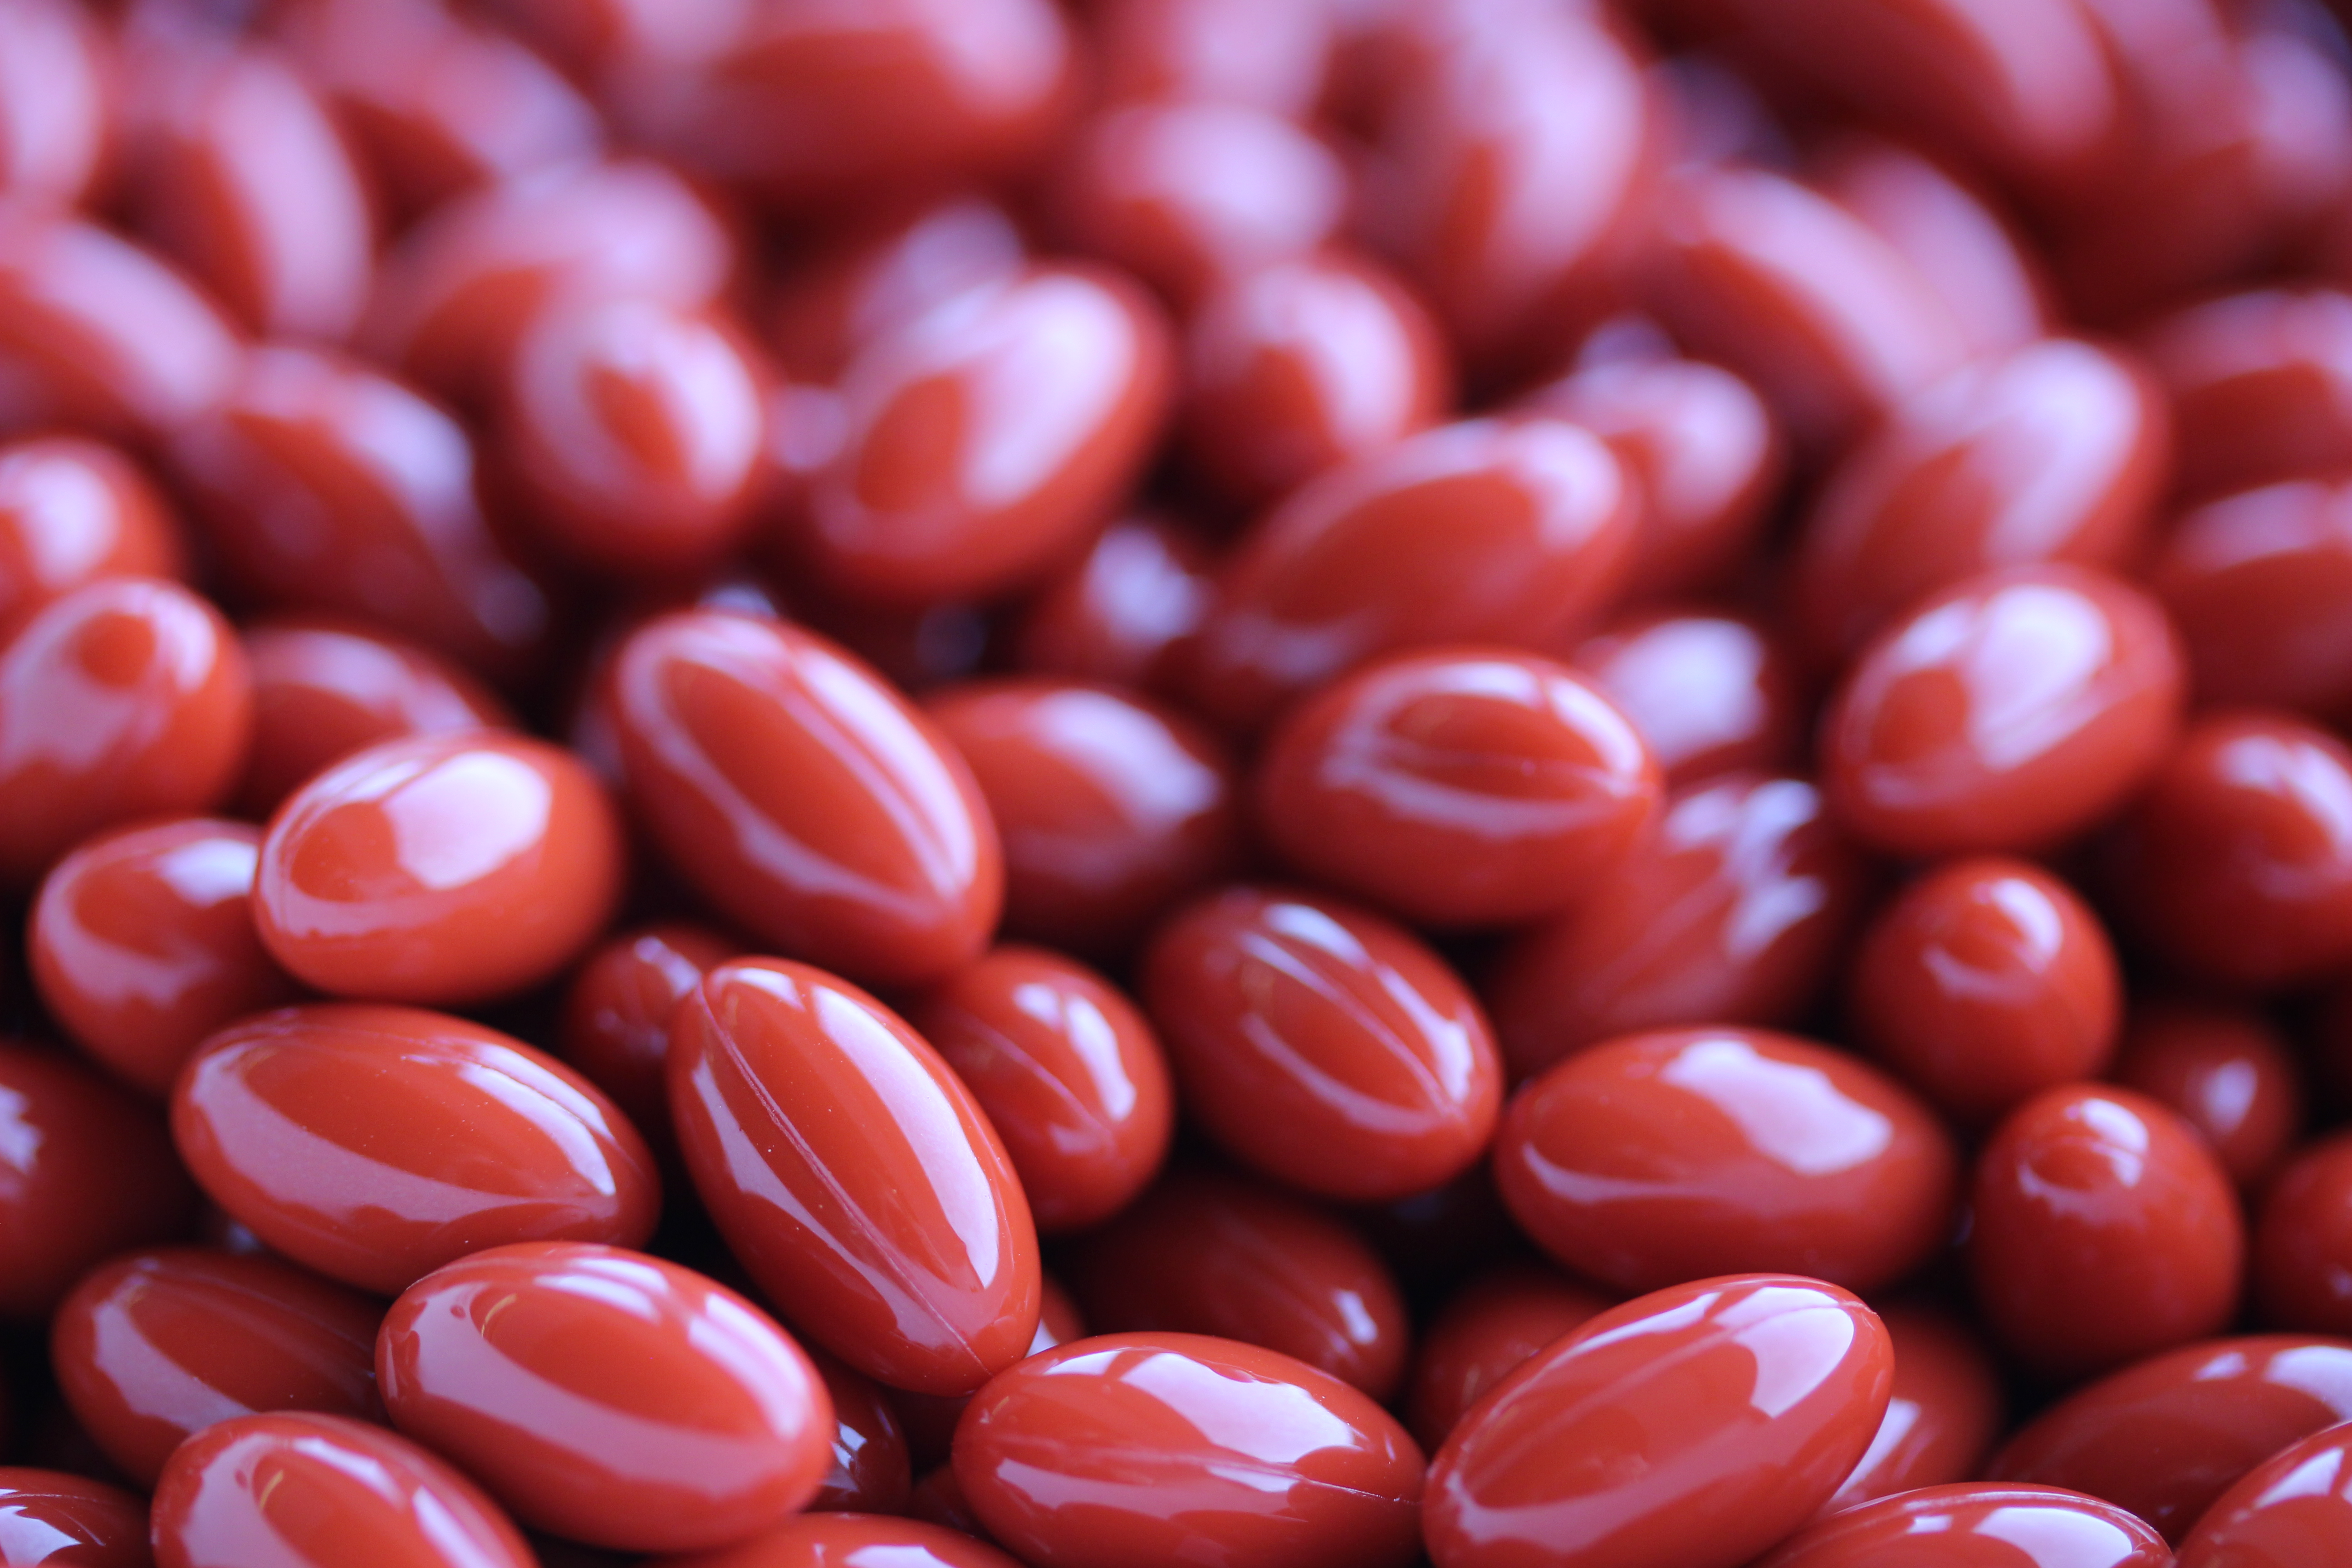 large quantities of red colored softgels